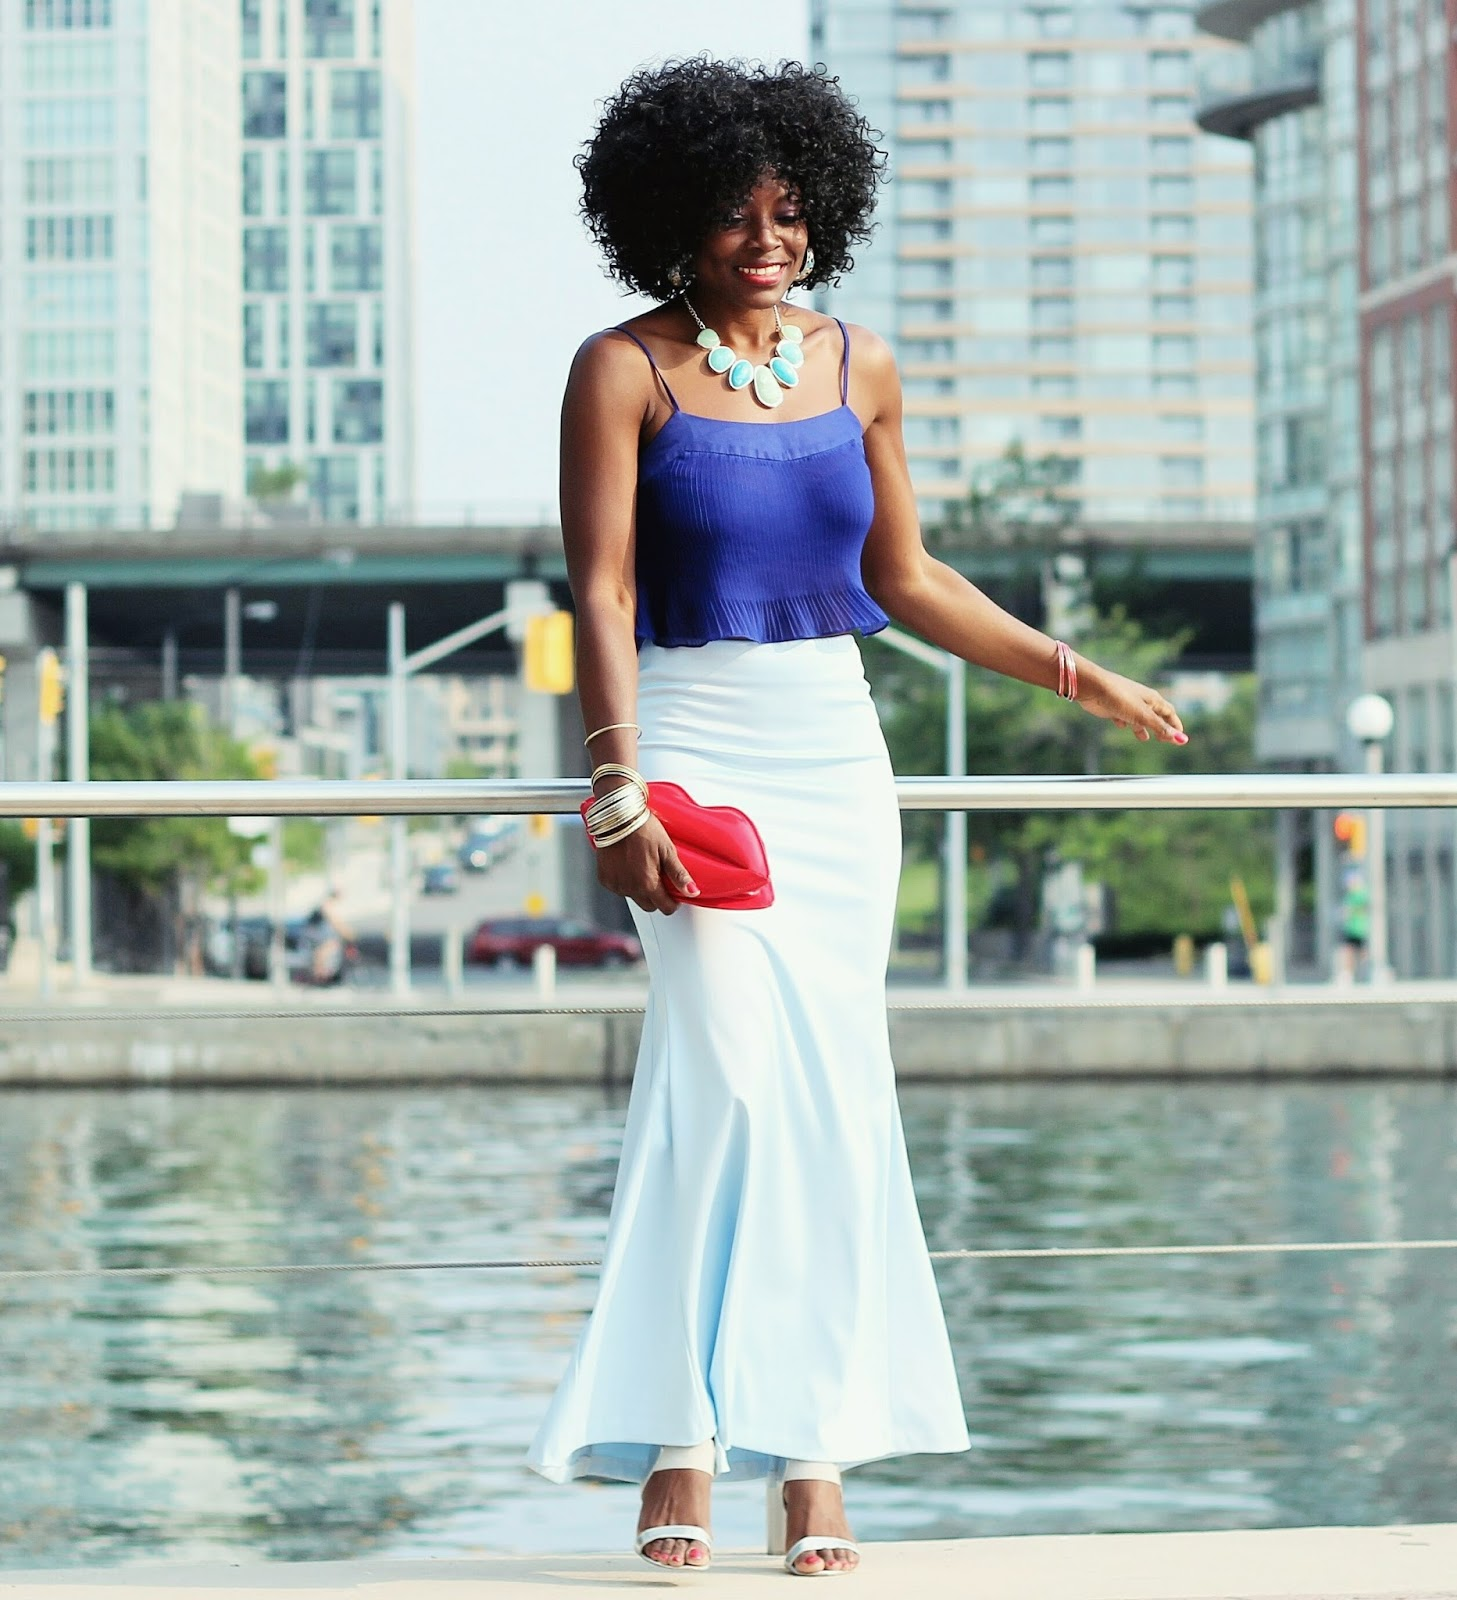 BLUE ON BLUE | CROP TOP x MAXI SKIRT